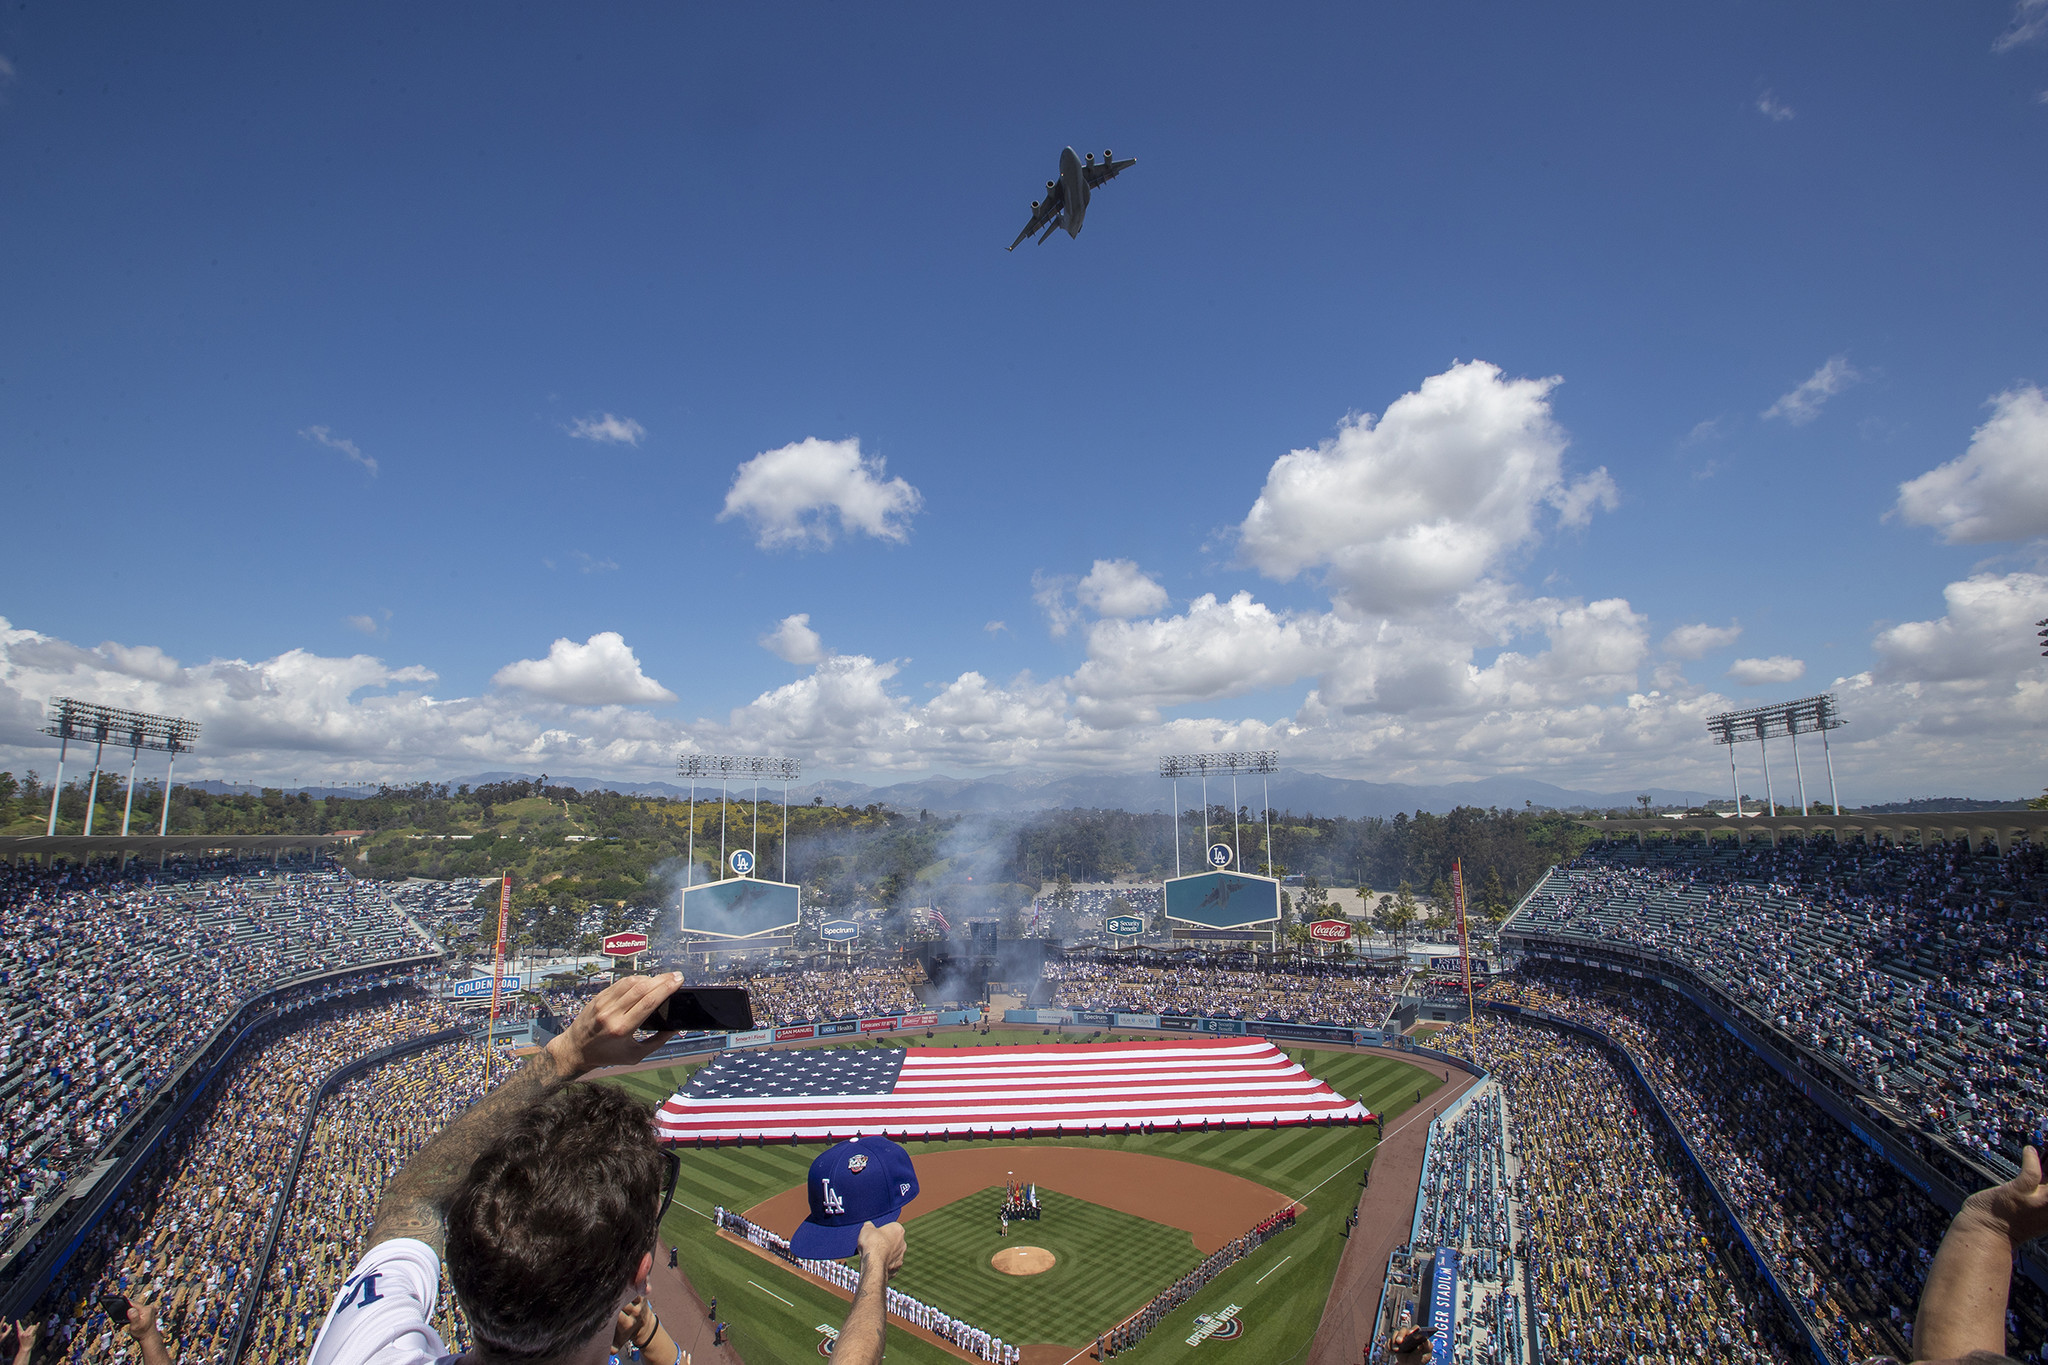 LOS ANGELES, CALIF. -- THURSDAY, MARCH 28, 2019: A C-17 Globemaster flies over the stadium during th